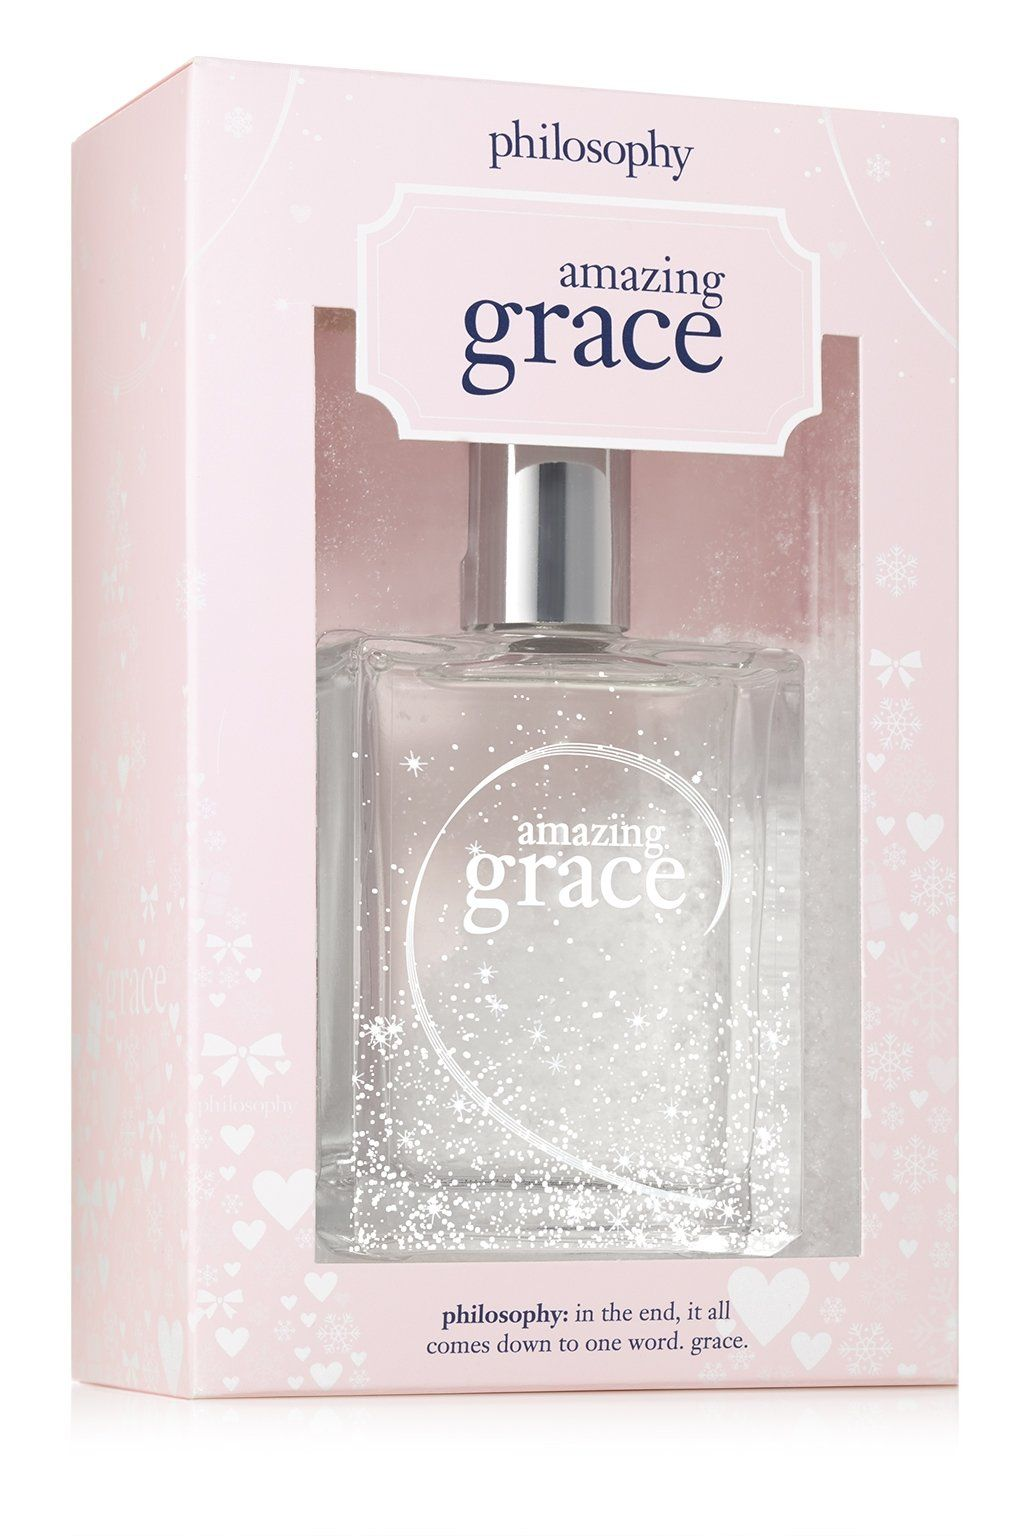 Philosophy S Iconic Amazingly Clean And Classic Feminine Floral Fragrance Comes Wrapped Holiday Style In Limite Philosophy Amazing Grace Amazing Grace Perfume